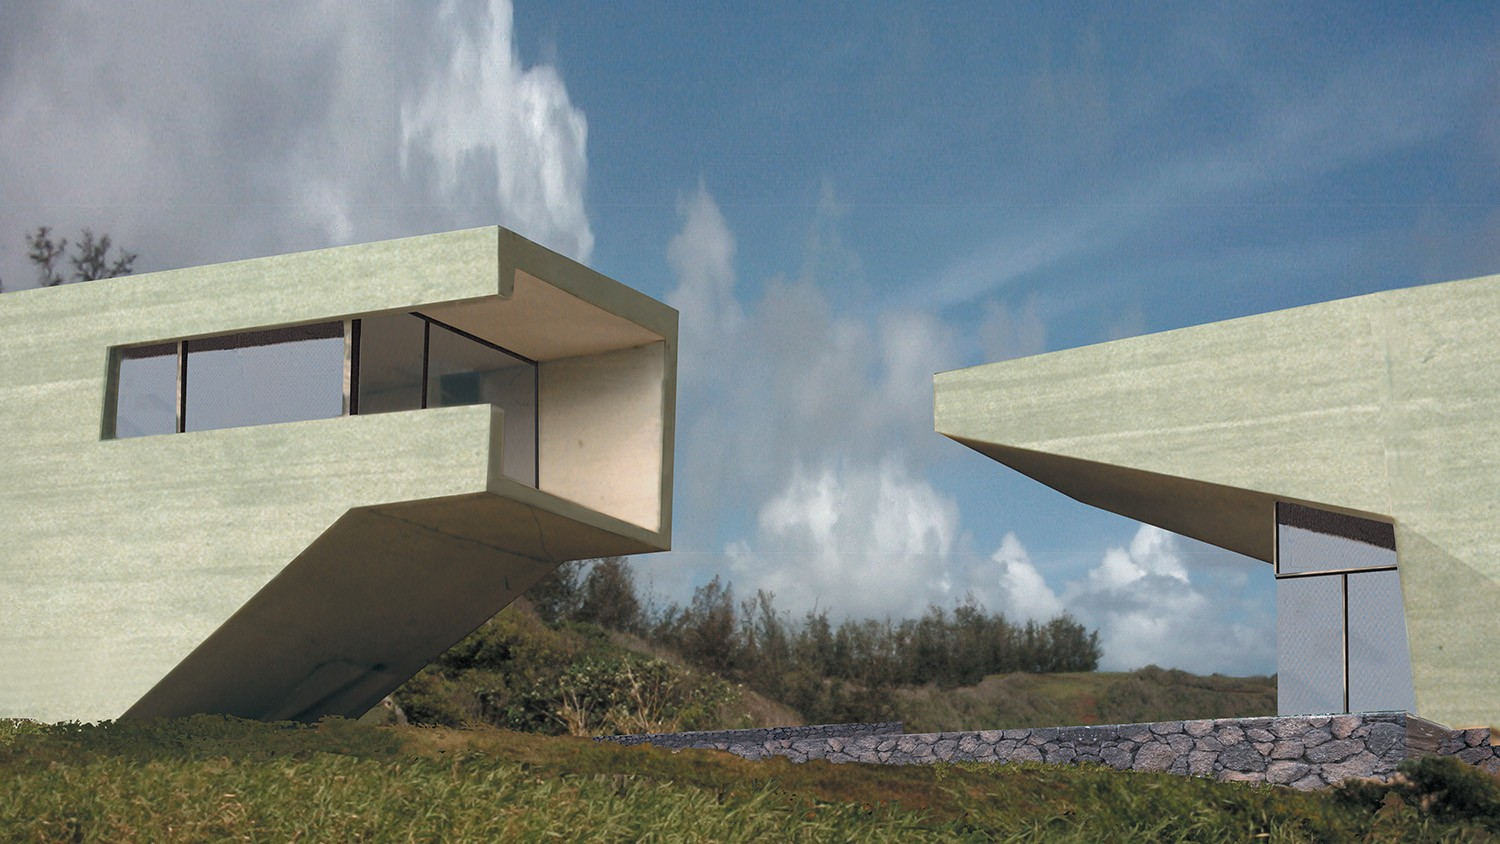 https://stevenholl.sfo2.digitaloceanspaces.com/uploads/projects/project-images/StevenHollArchitects_Oceanic_02OceanicRetreat_0901A_WH.jpg